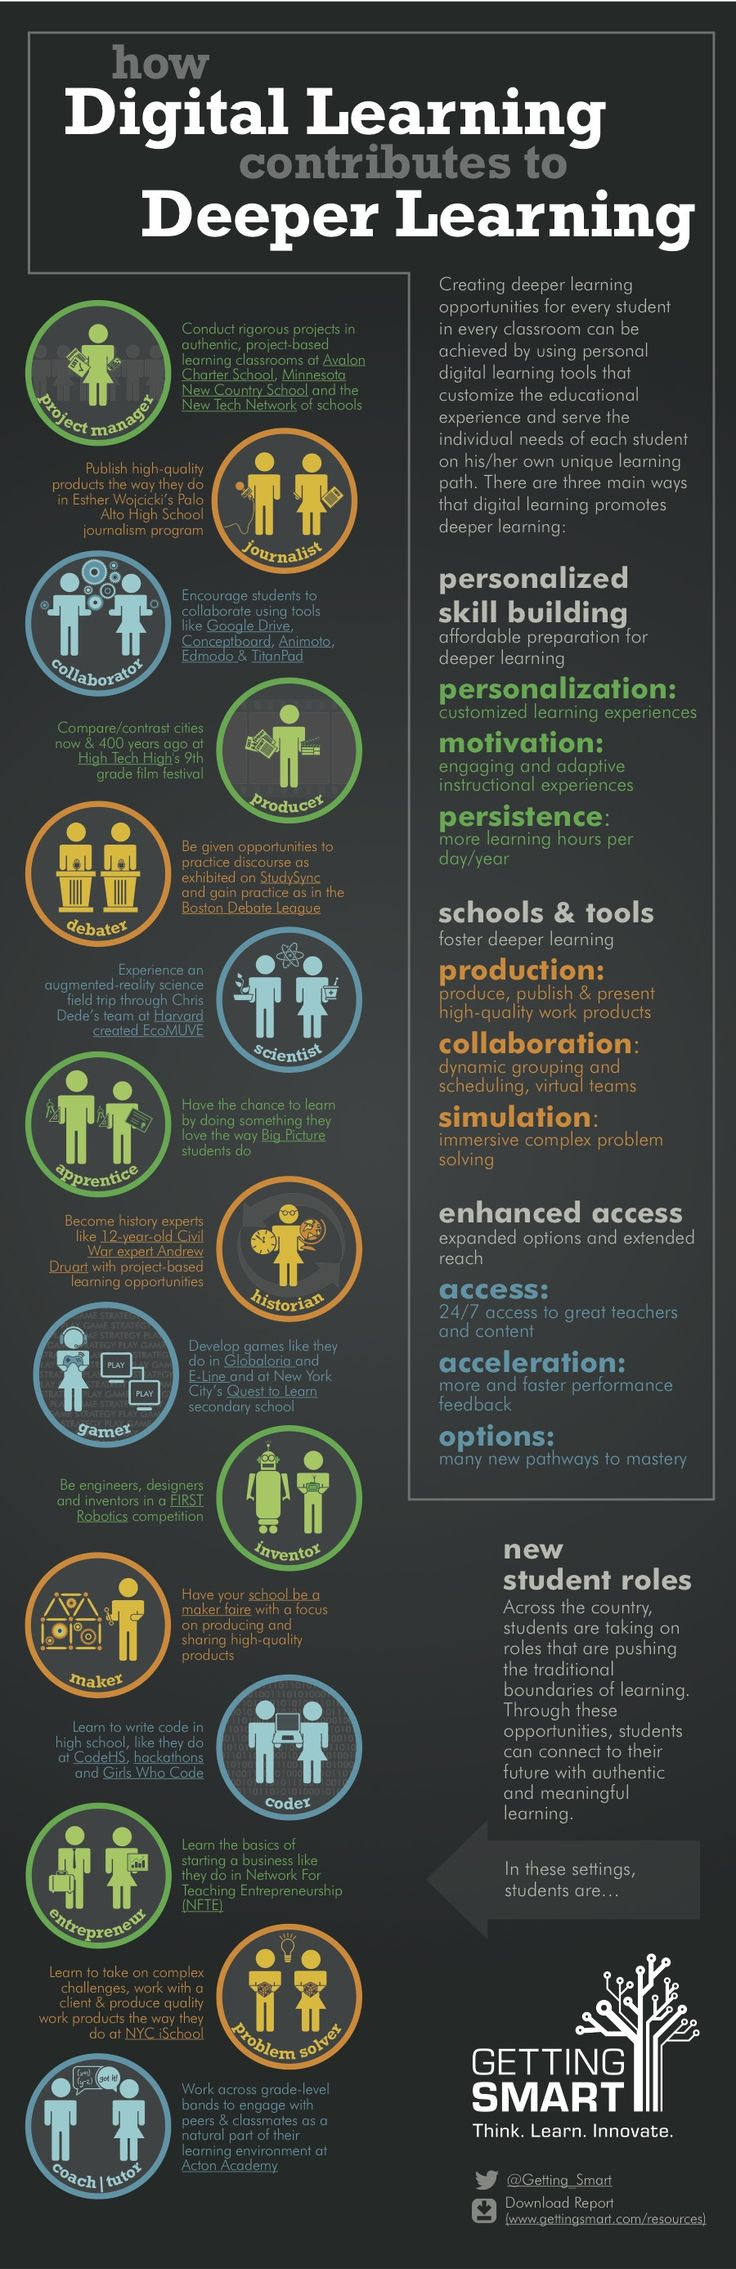 Digital Learning and Deeper Learning